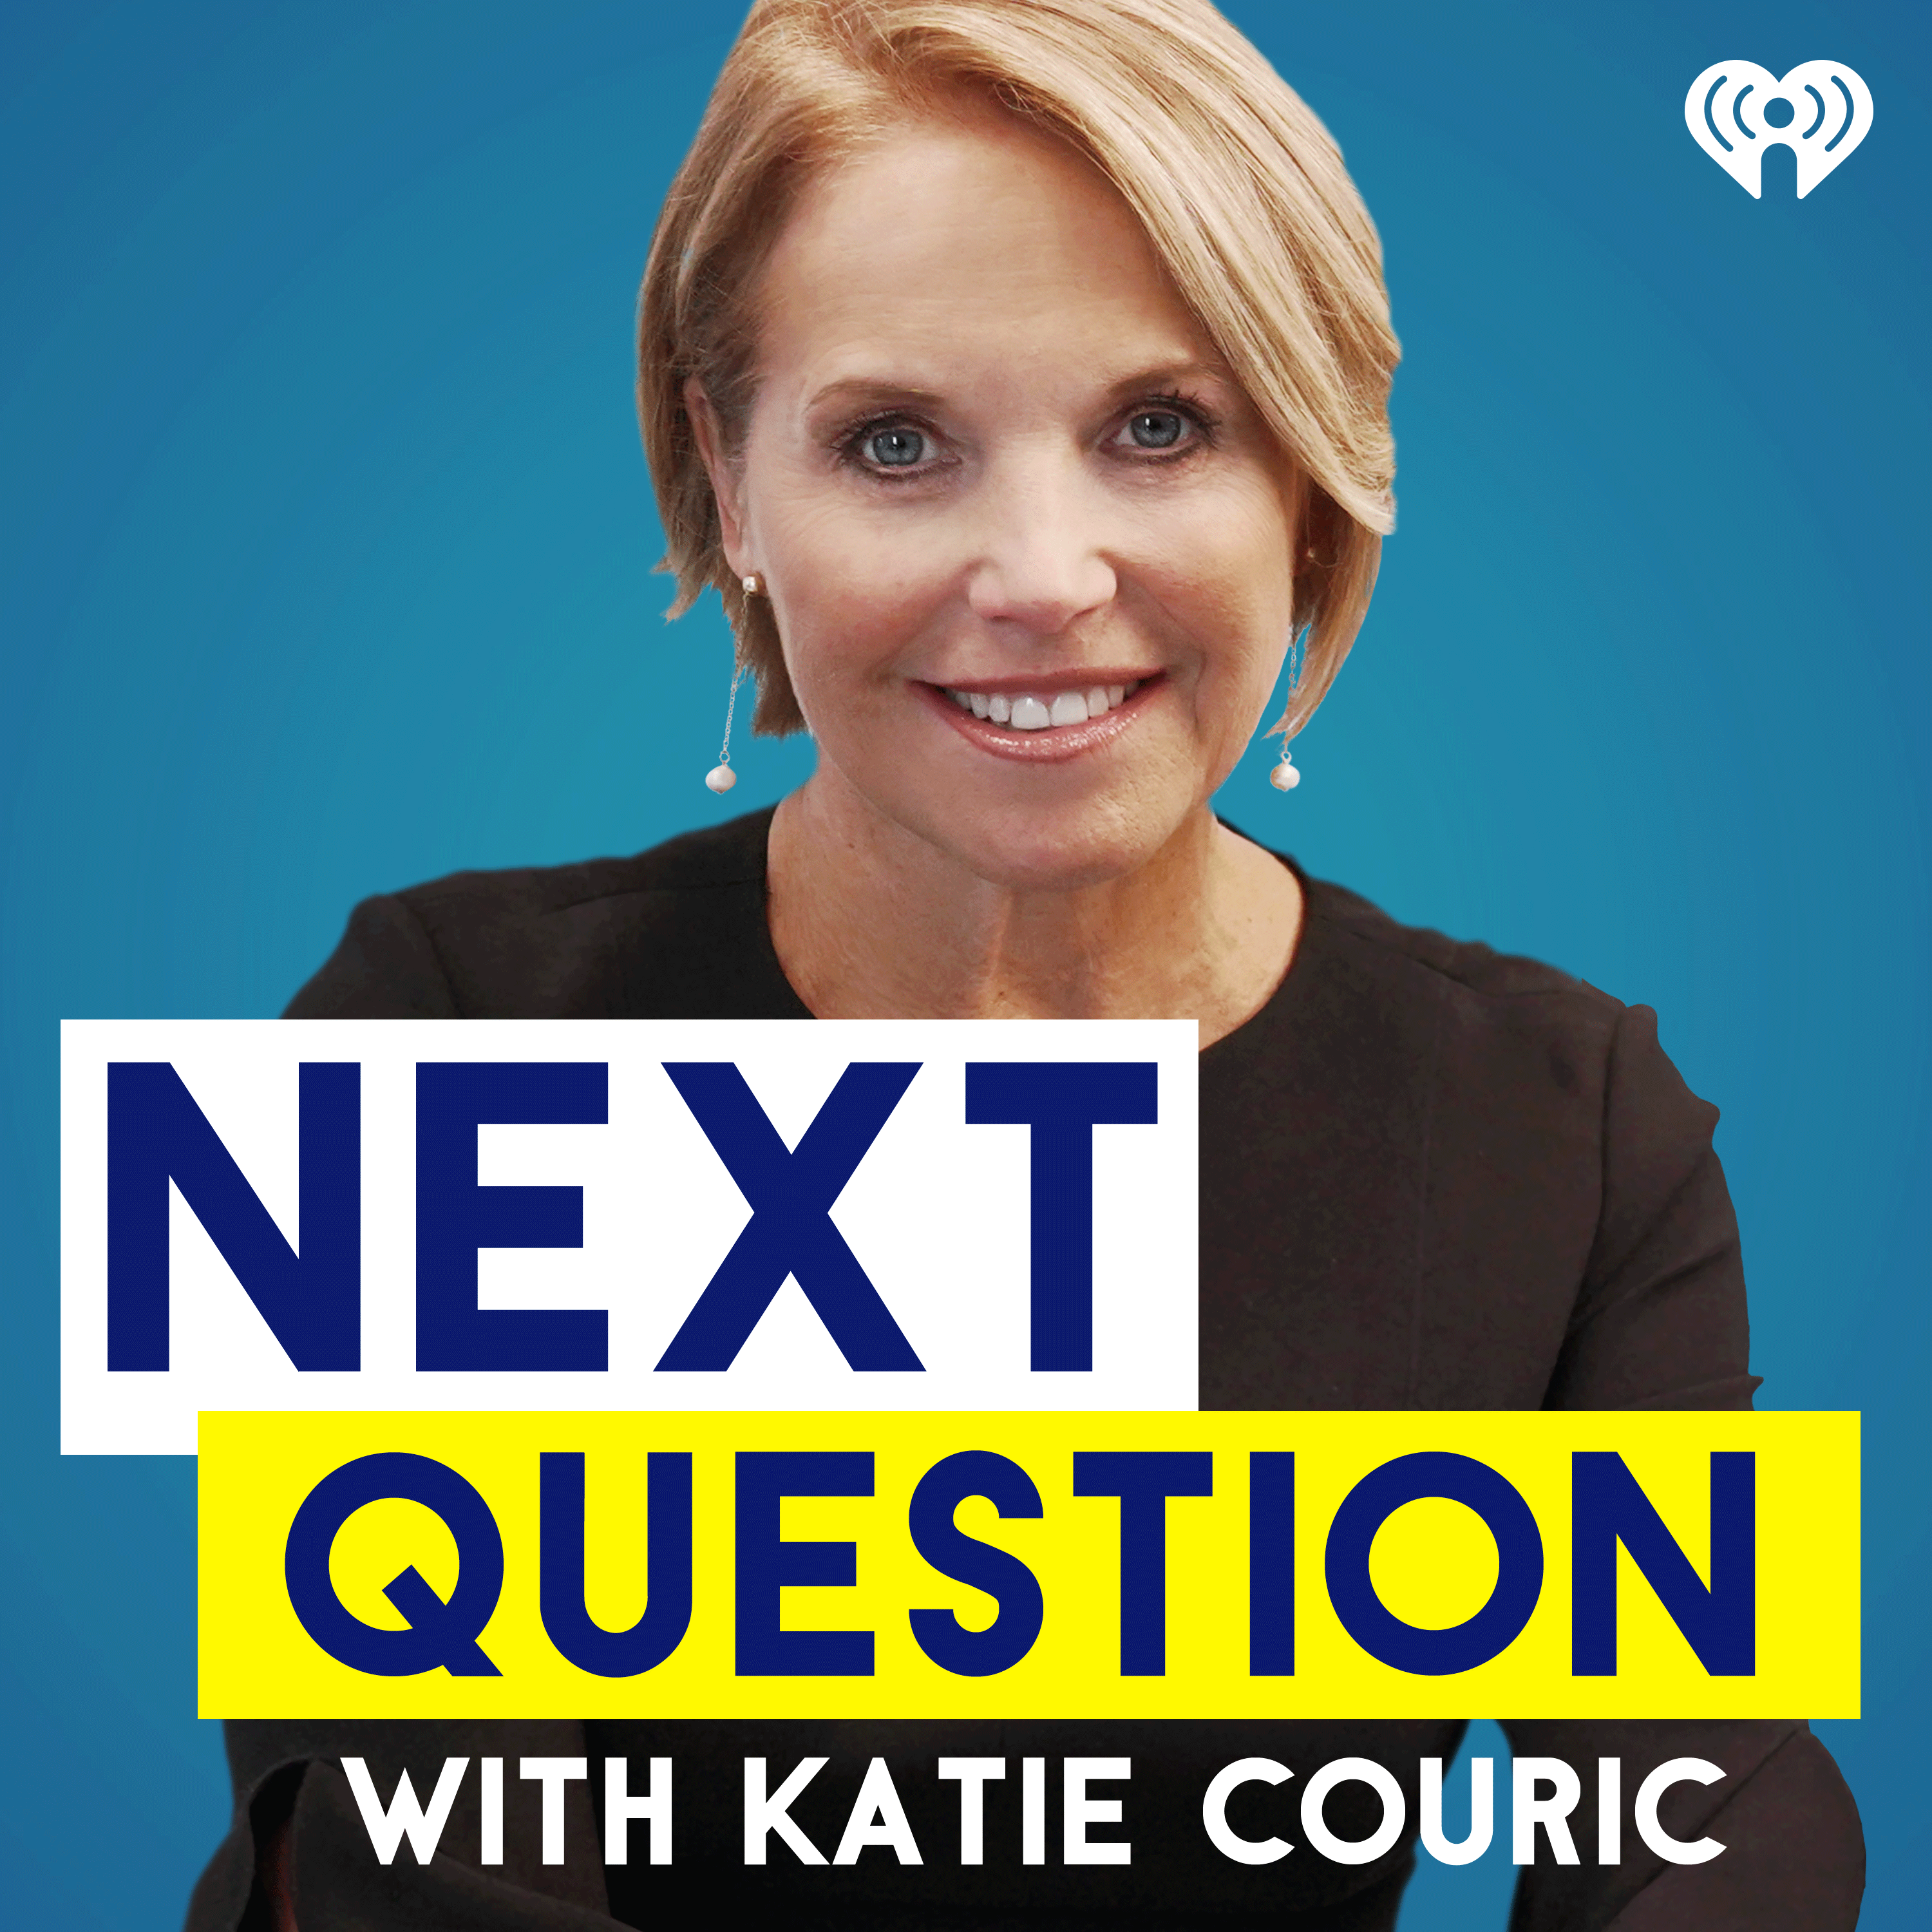 Introducing: Next Question with Katie Couric